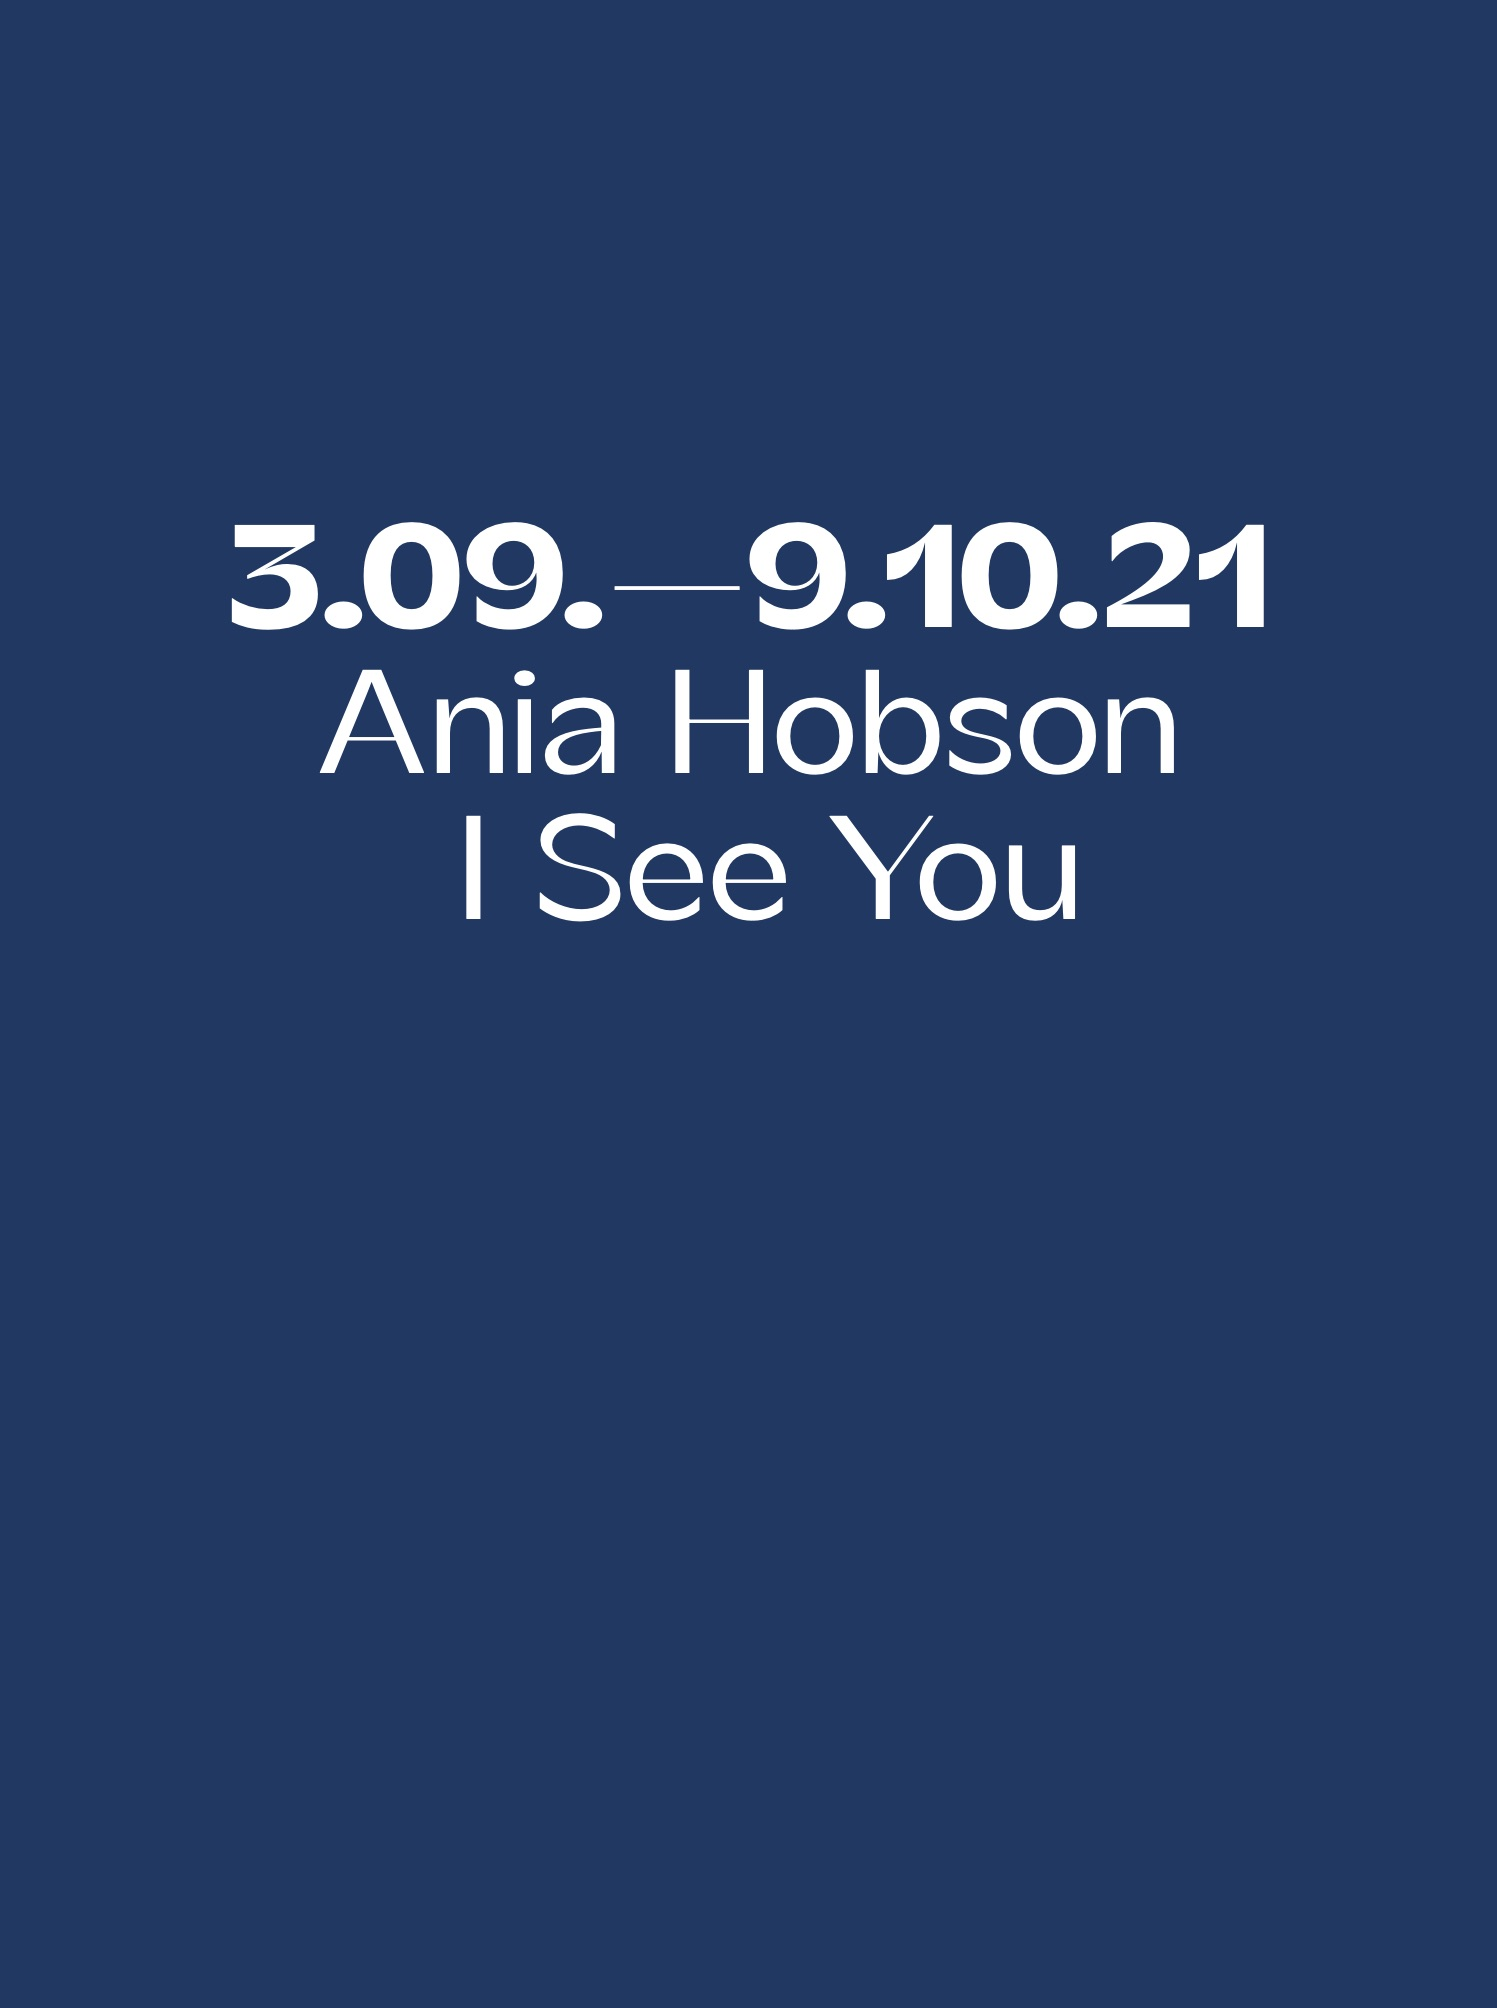 Ania Hobson - I See You Text